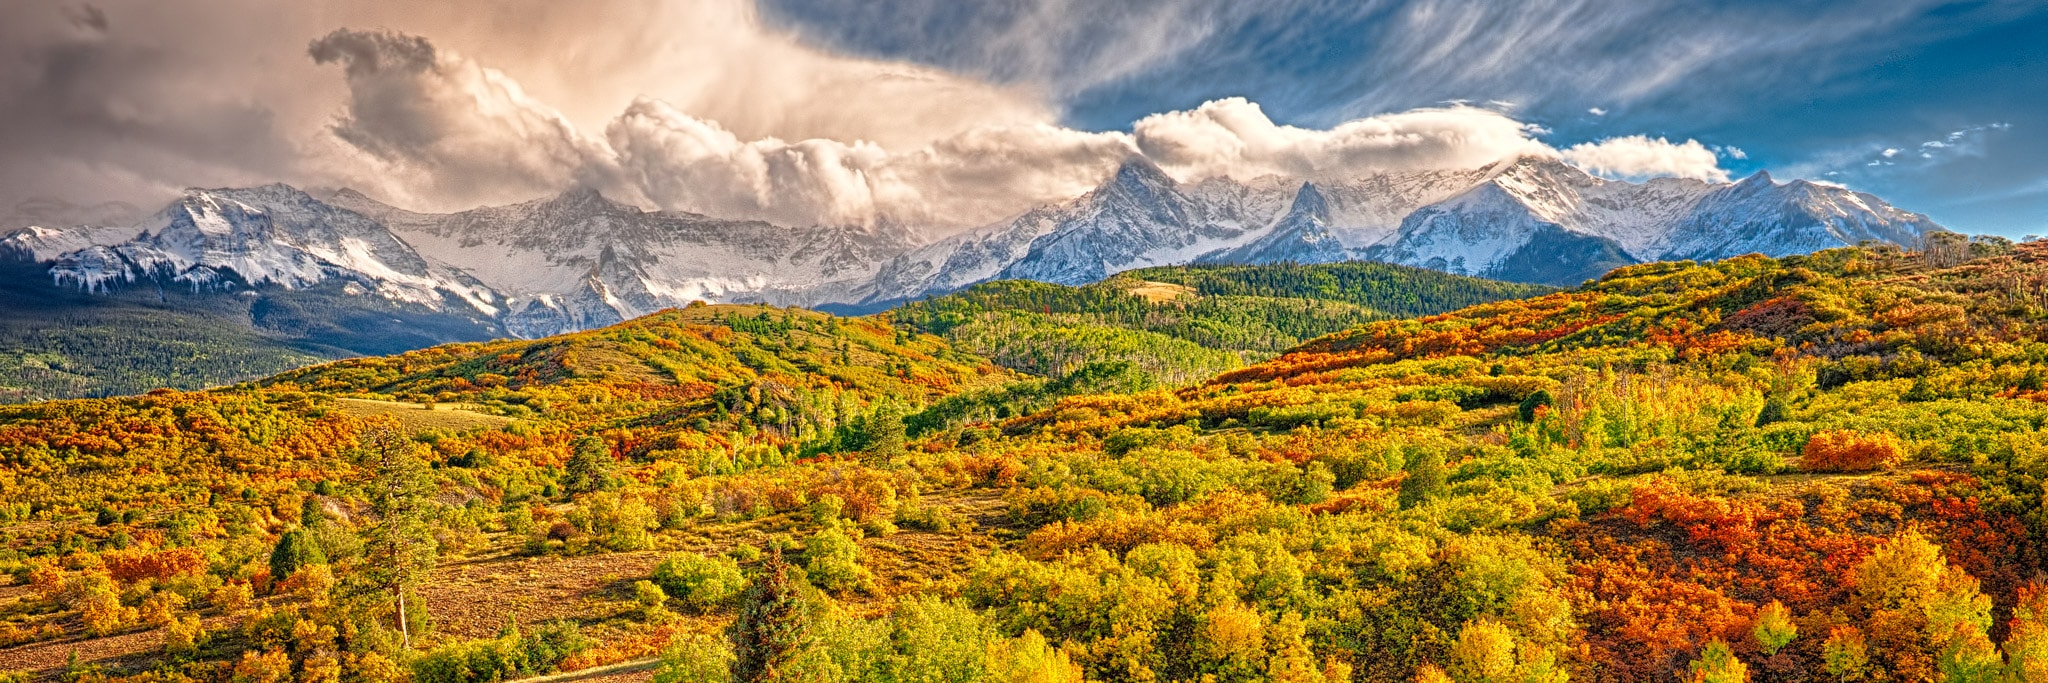 View autumn color below the Sneffles Range near the Dallas Divide on Colorado Highway 62 near Ridgeway, Colorado.